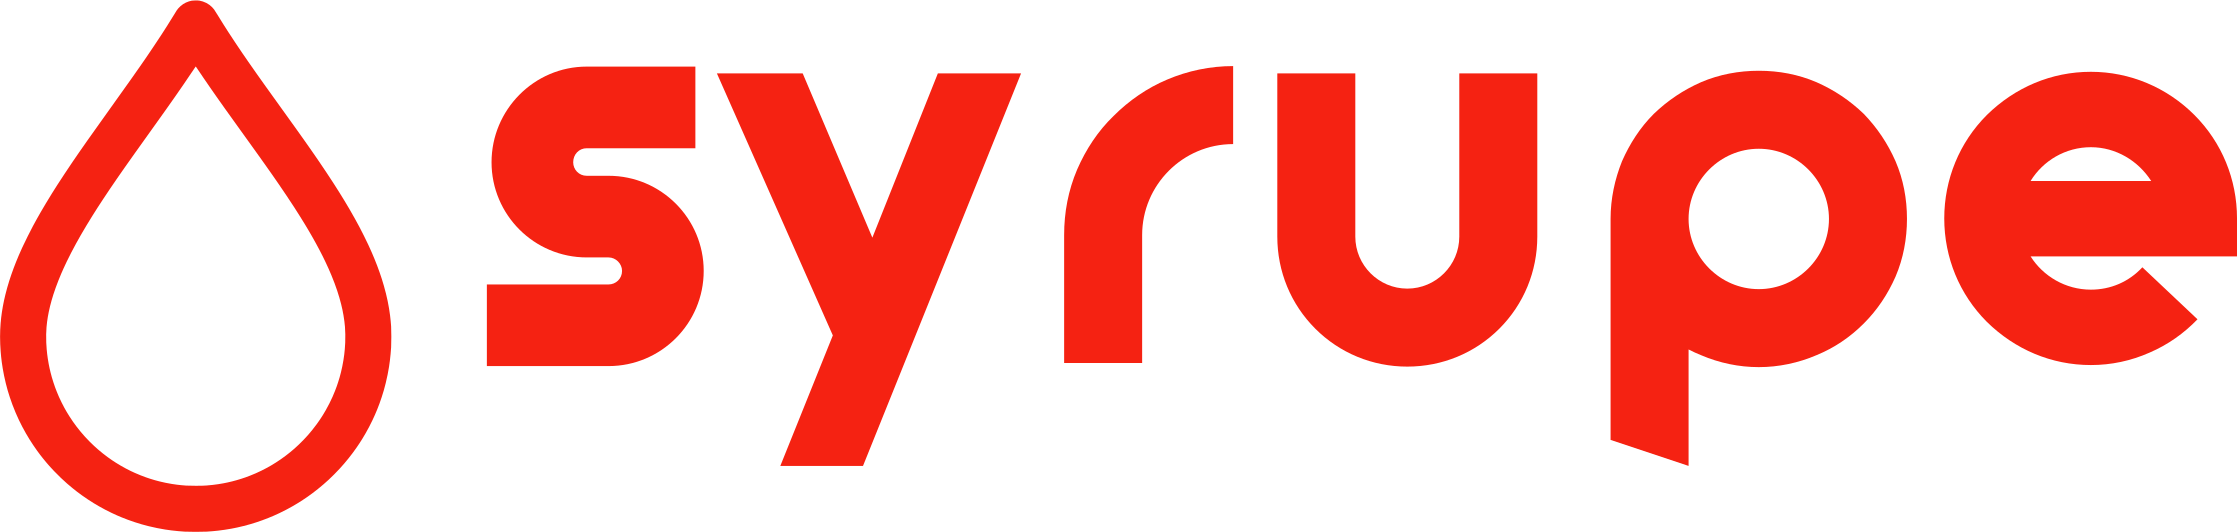 Syrupe